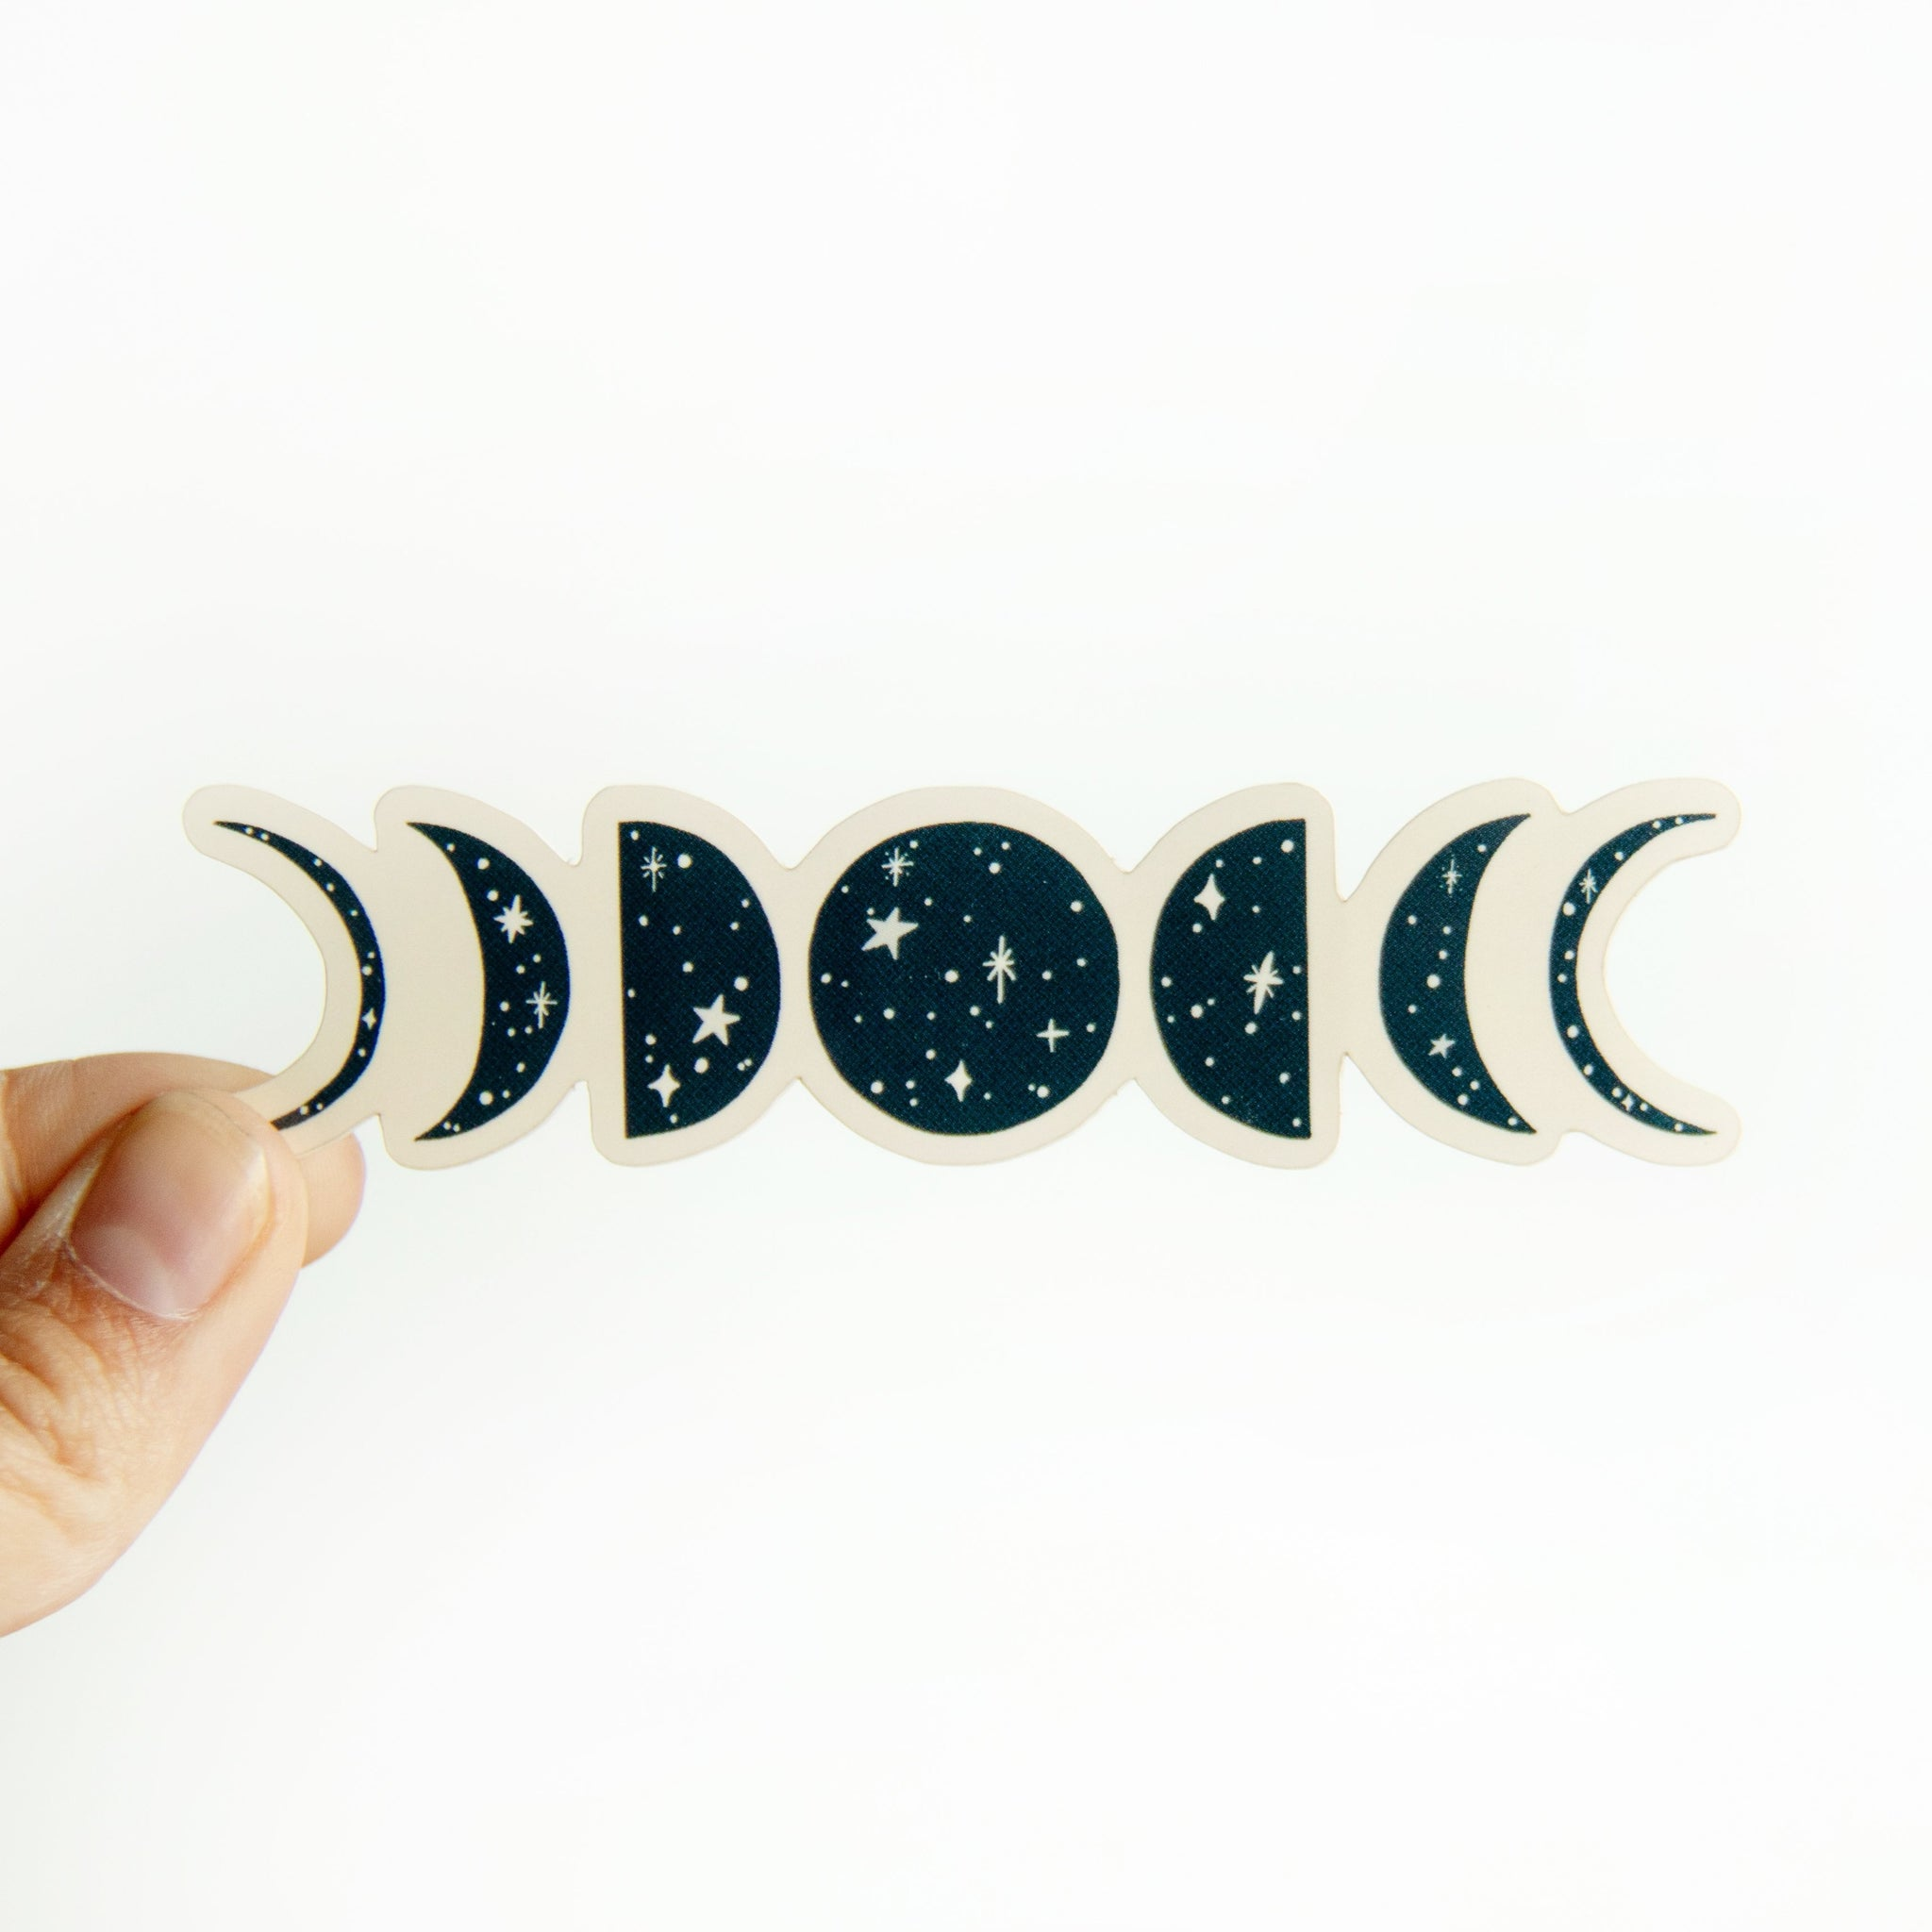 Phases of the Moon - Vinyl Sticker